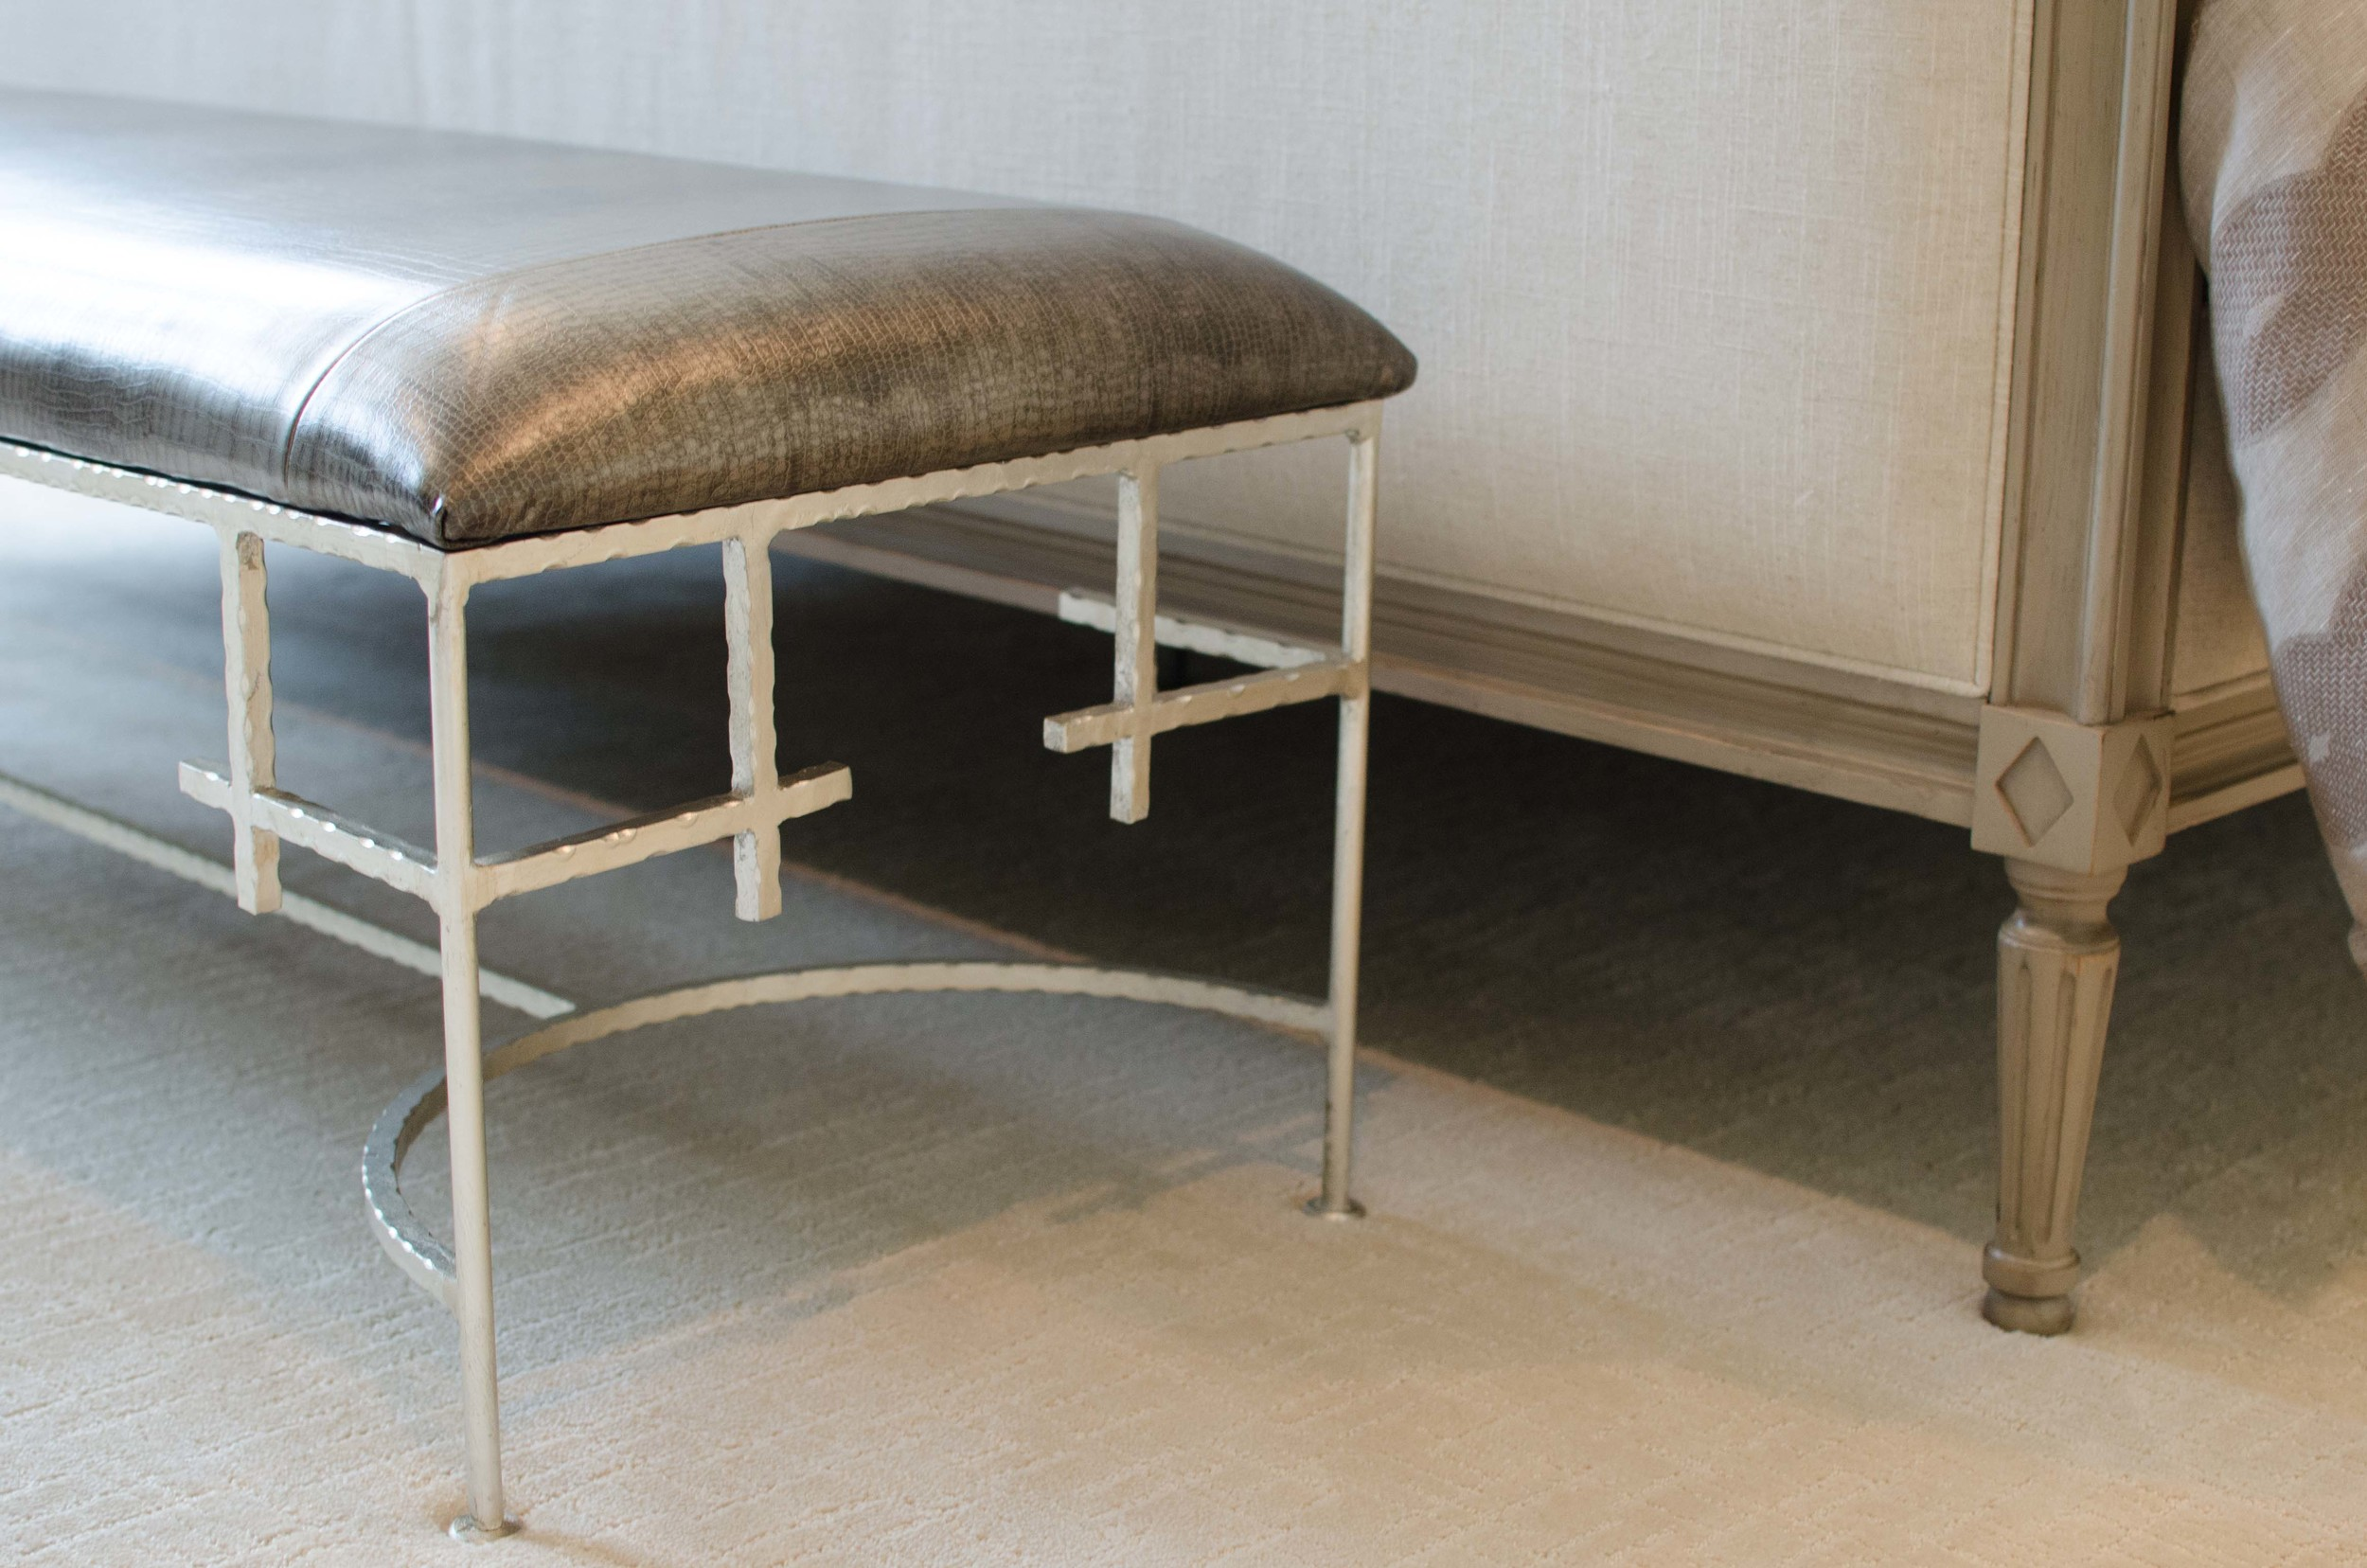 Modern bench at the foot of a bed